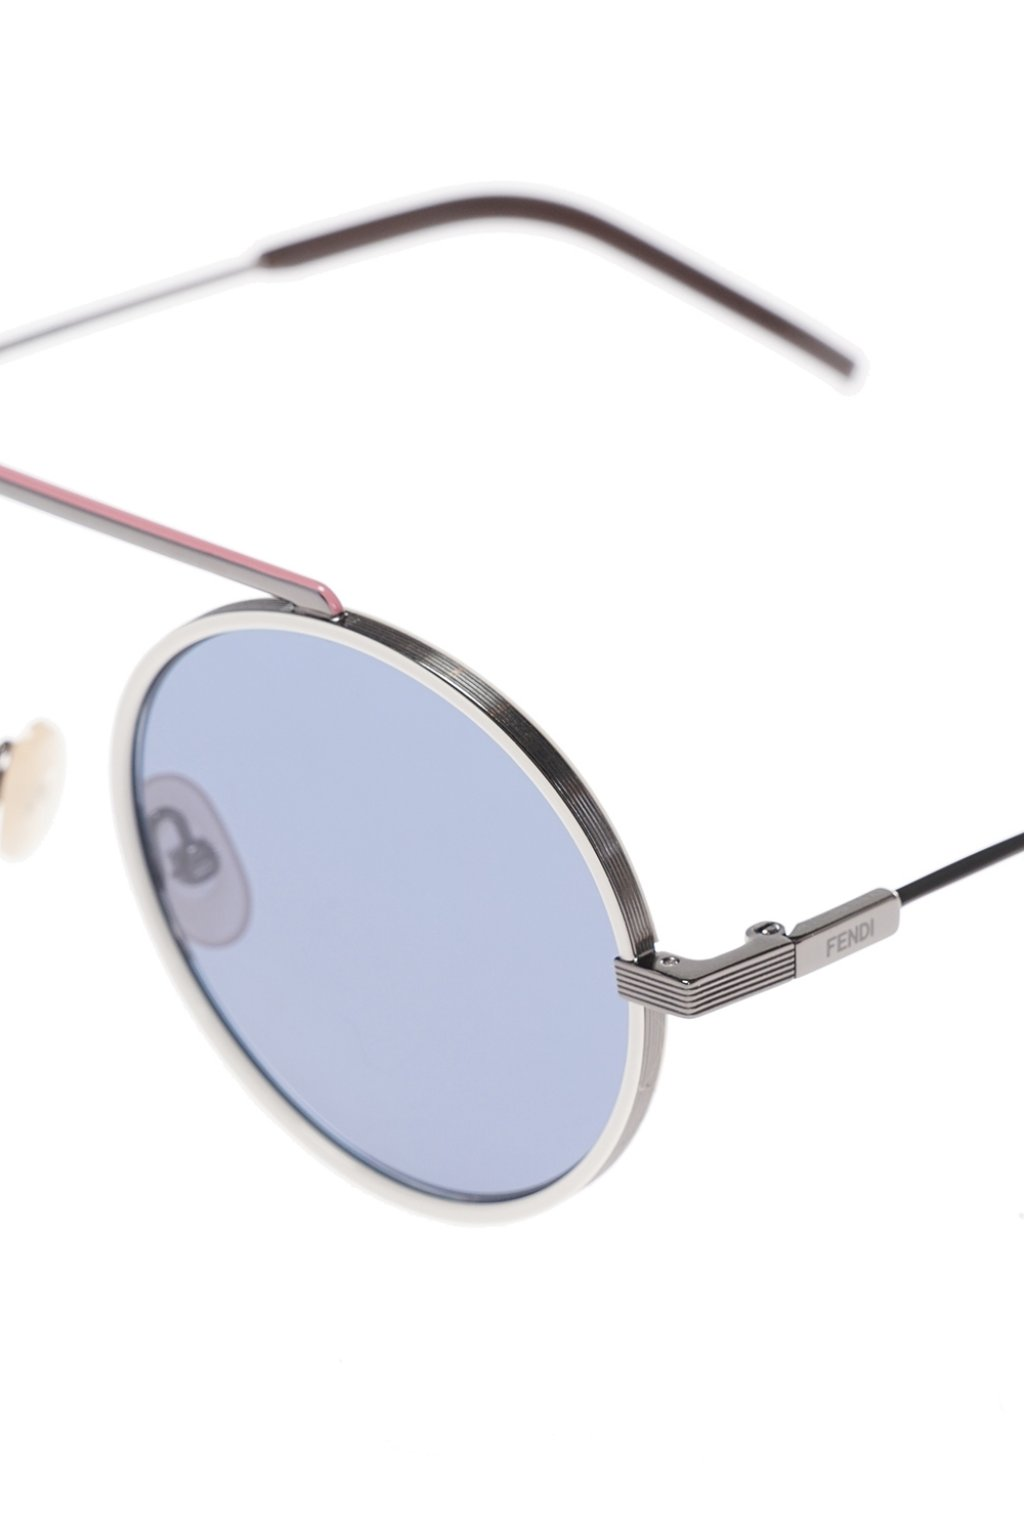 Fendi 'Everyday Fendi' sunglasses